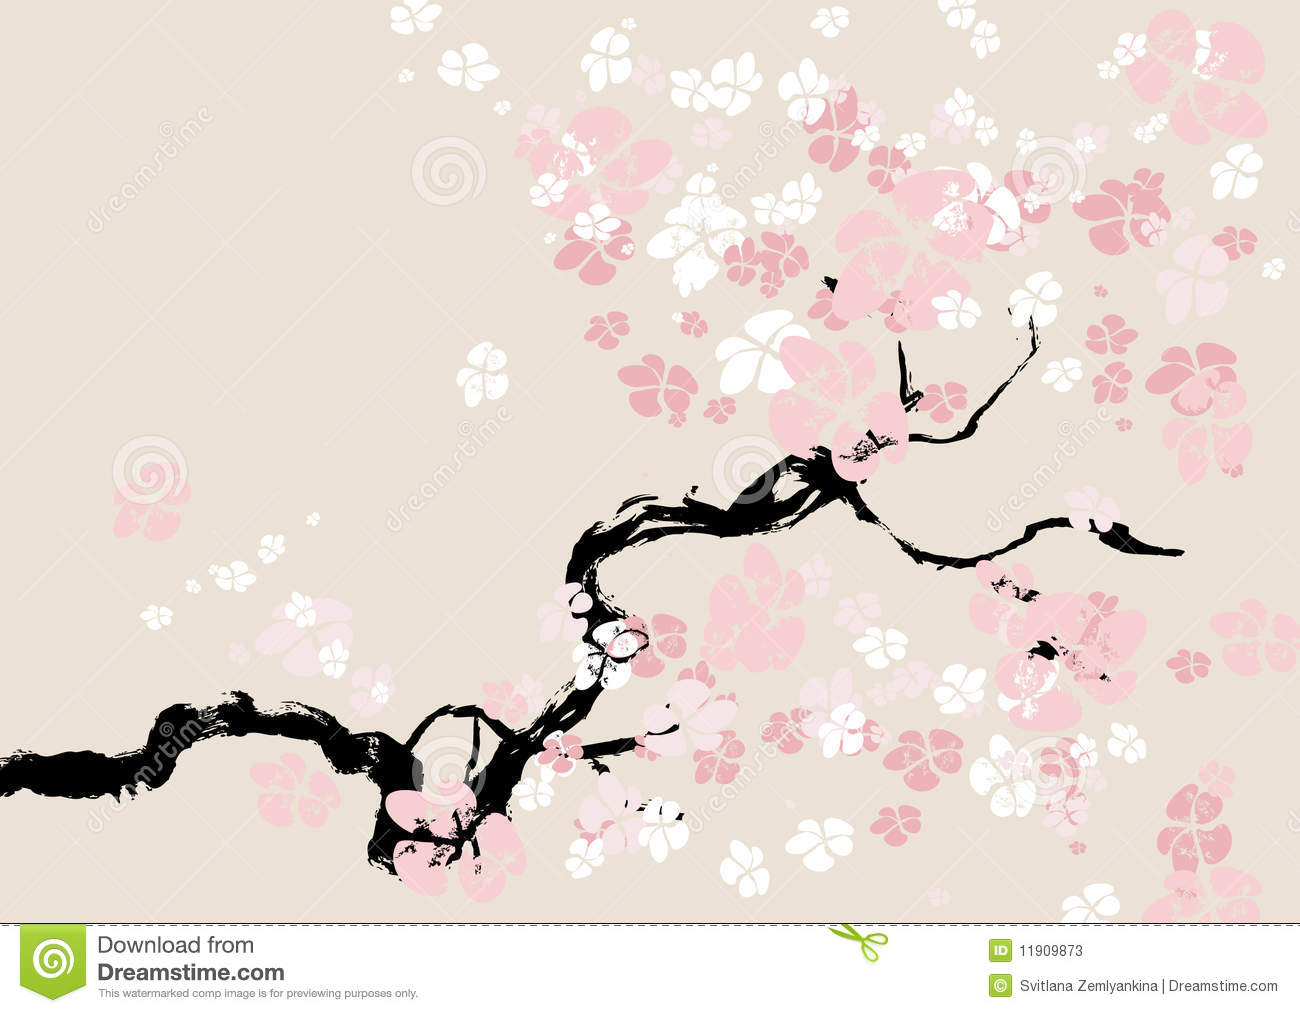 Free Download Japanese Cherry Blossom Drawing Border Cherry Blossom 1300x1013 For Your Desktop Mobile Tablet Explore 45 Japanese Cherry Blossom Wallpaper Border Cherry Blossom Wallpaper For Walls Japanese Cherry